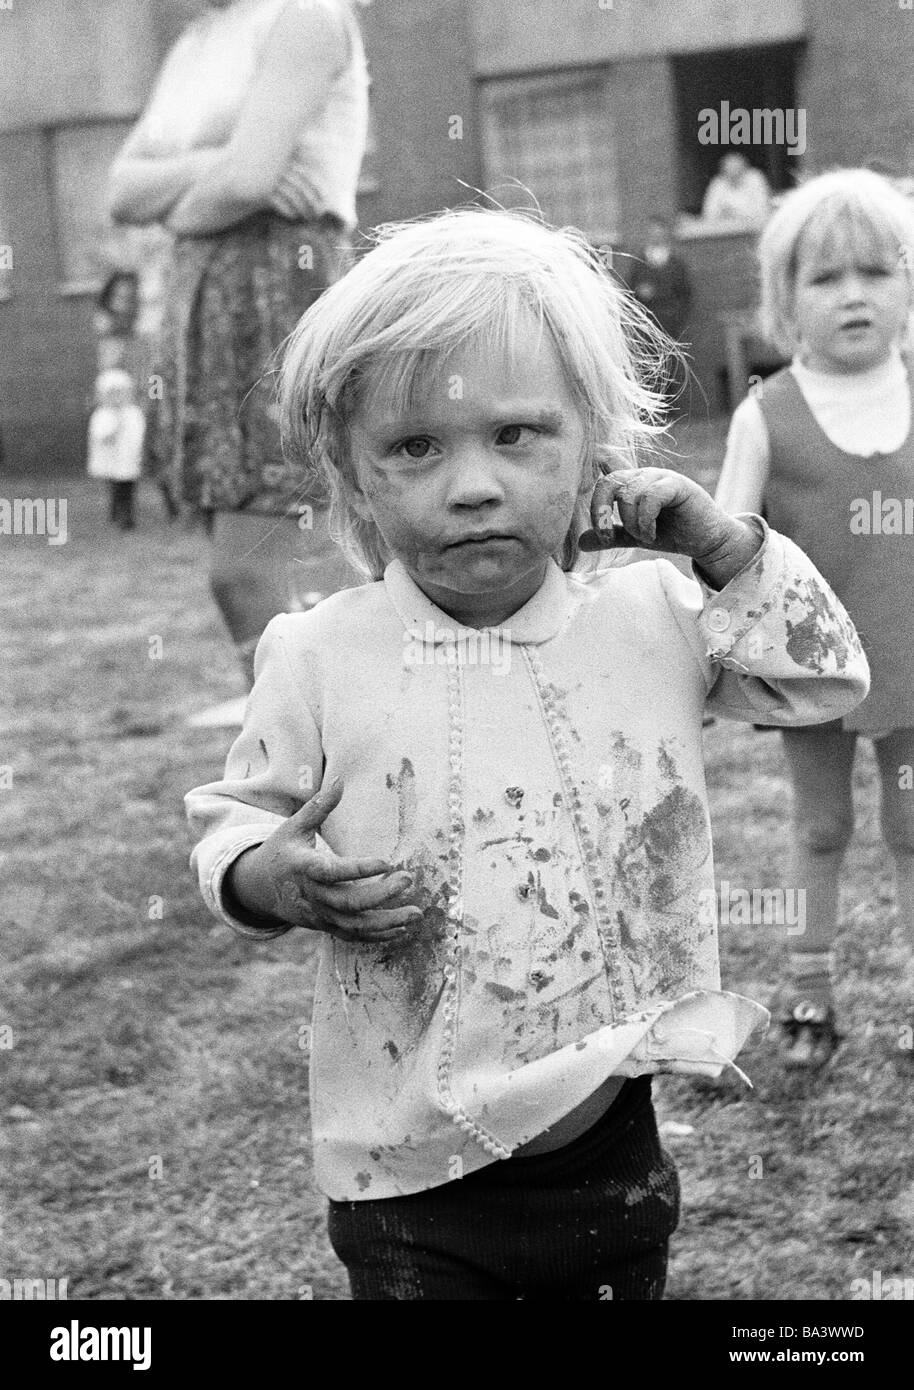 Seventies, black and white photo, people, children, little girl, portrait, street kid, dirty, unkemptly, aged 4 Stock Photo